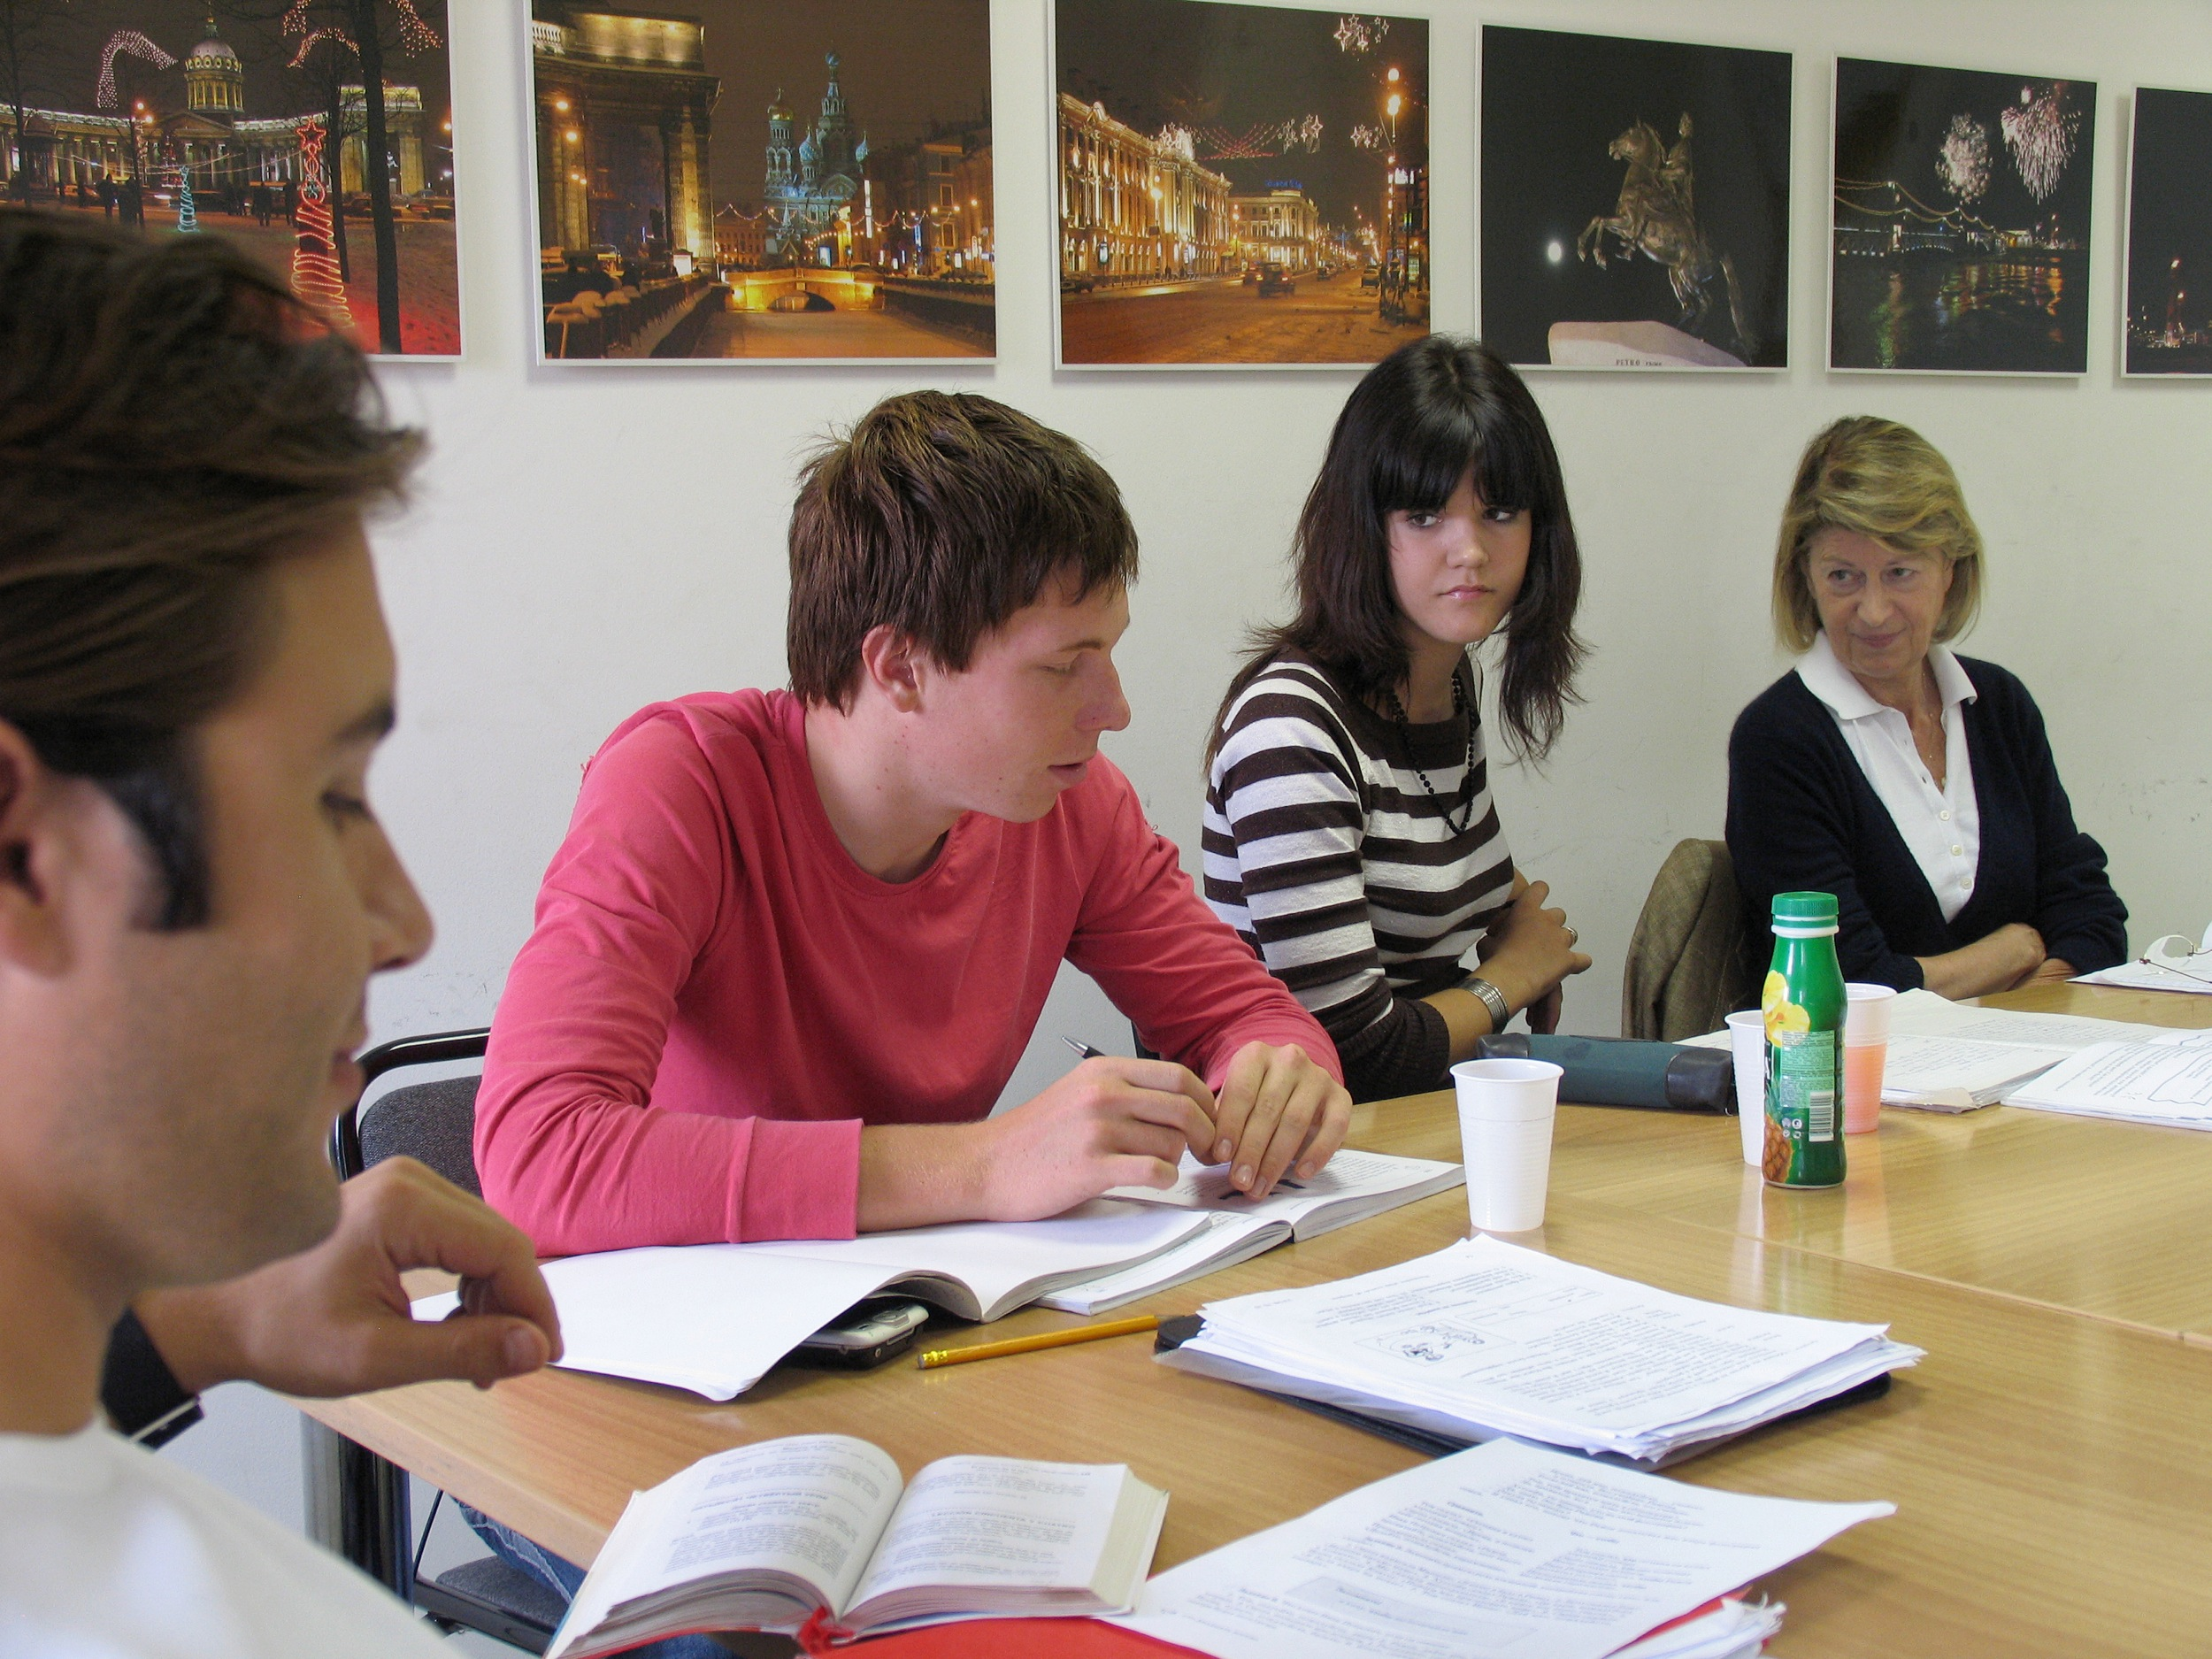 russian coursework Russian courses at moscow state university (msu) introduction to our russian language courses in moscow at msu we would like to invite you to learn the russian language at the famous lomonosov moscow state universitylomonosov university is the largest and oldest university in moscow and russia, founded in 1755 by the poet and scientist mikhail lomonosov.